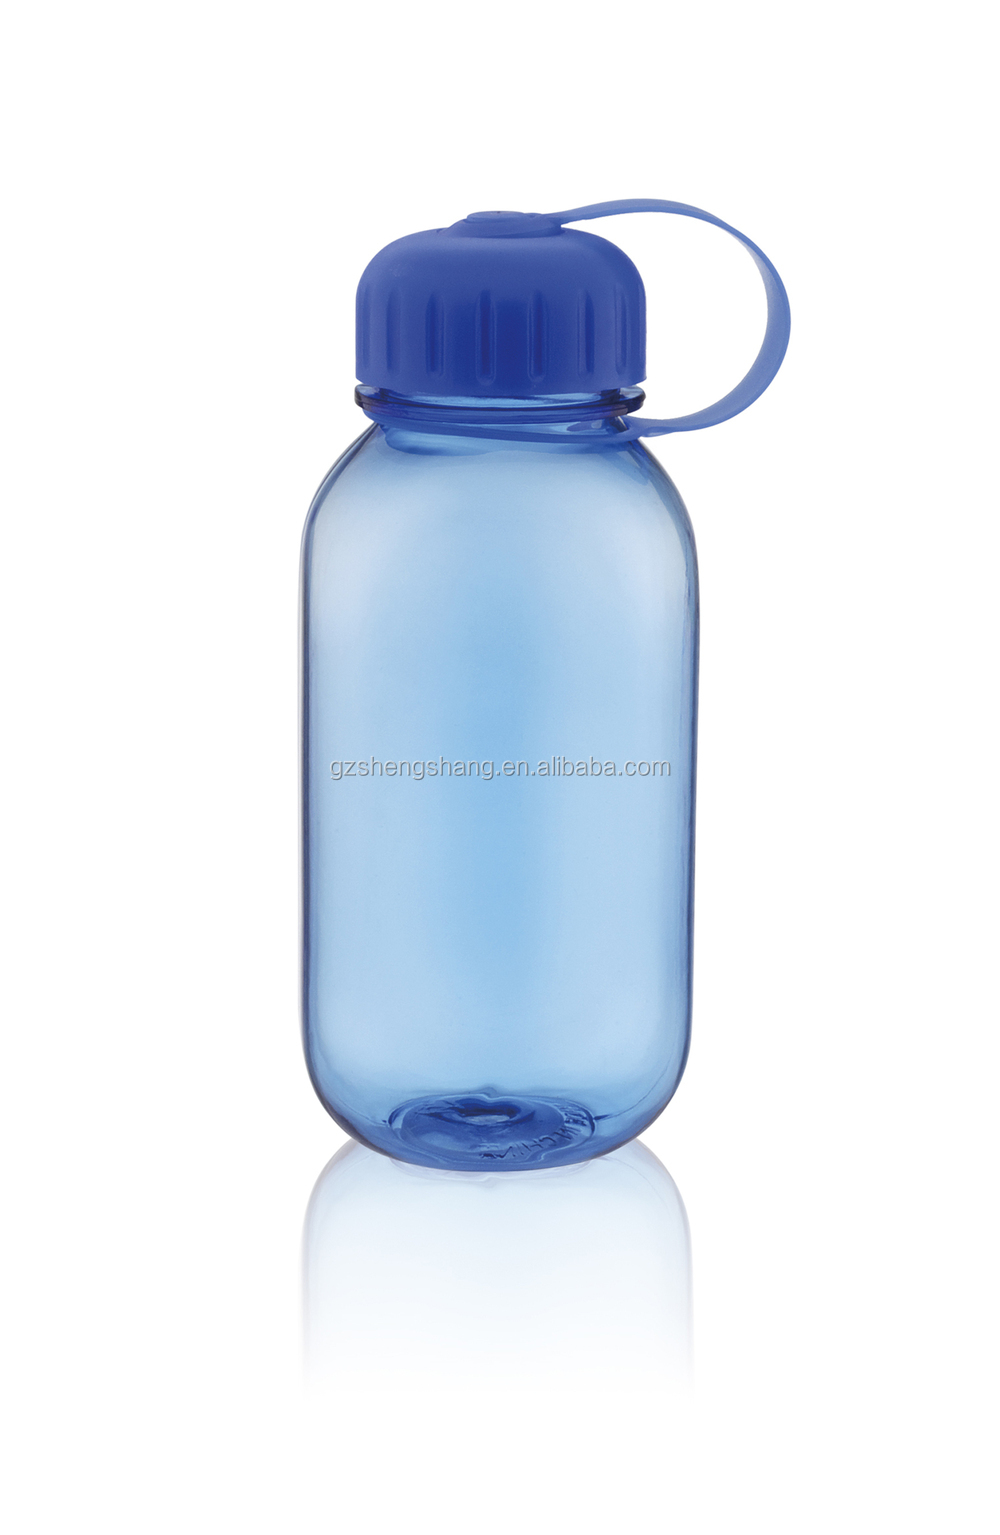 ECO-friendly 100% BPA free plastic juice bottle wholesale